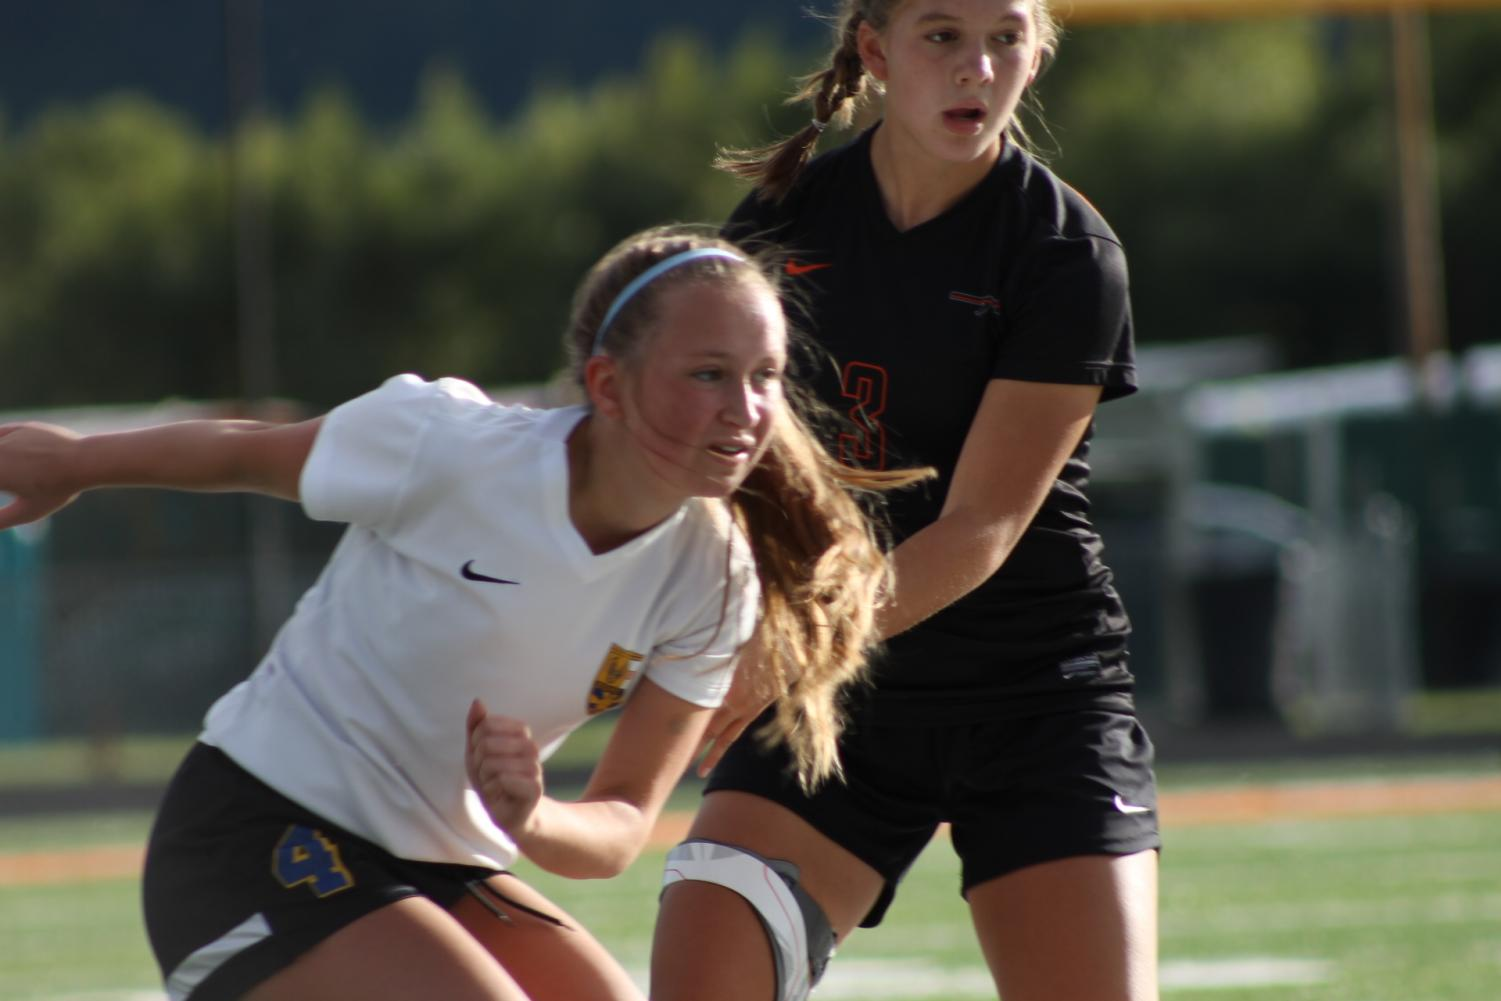 Annie Migliaccio races to the ball while a defender hovers behind her.